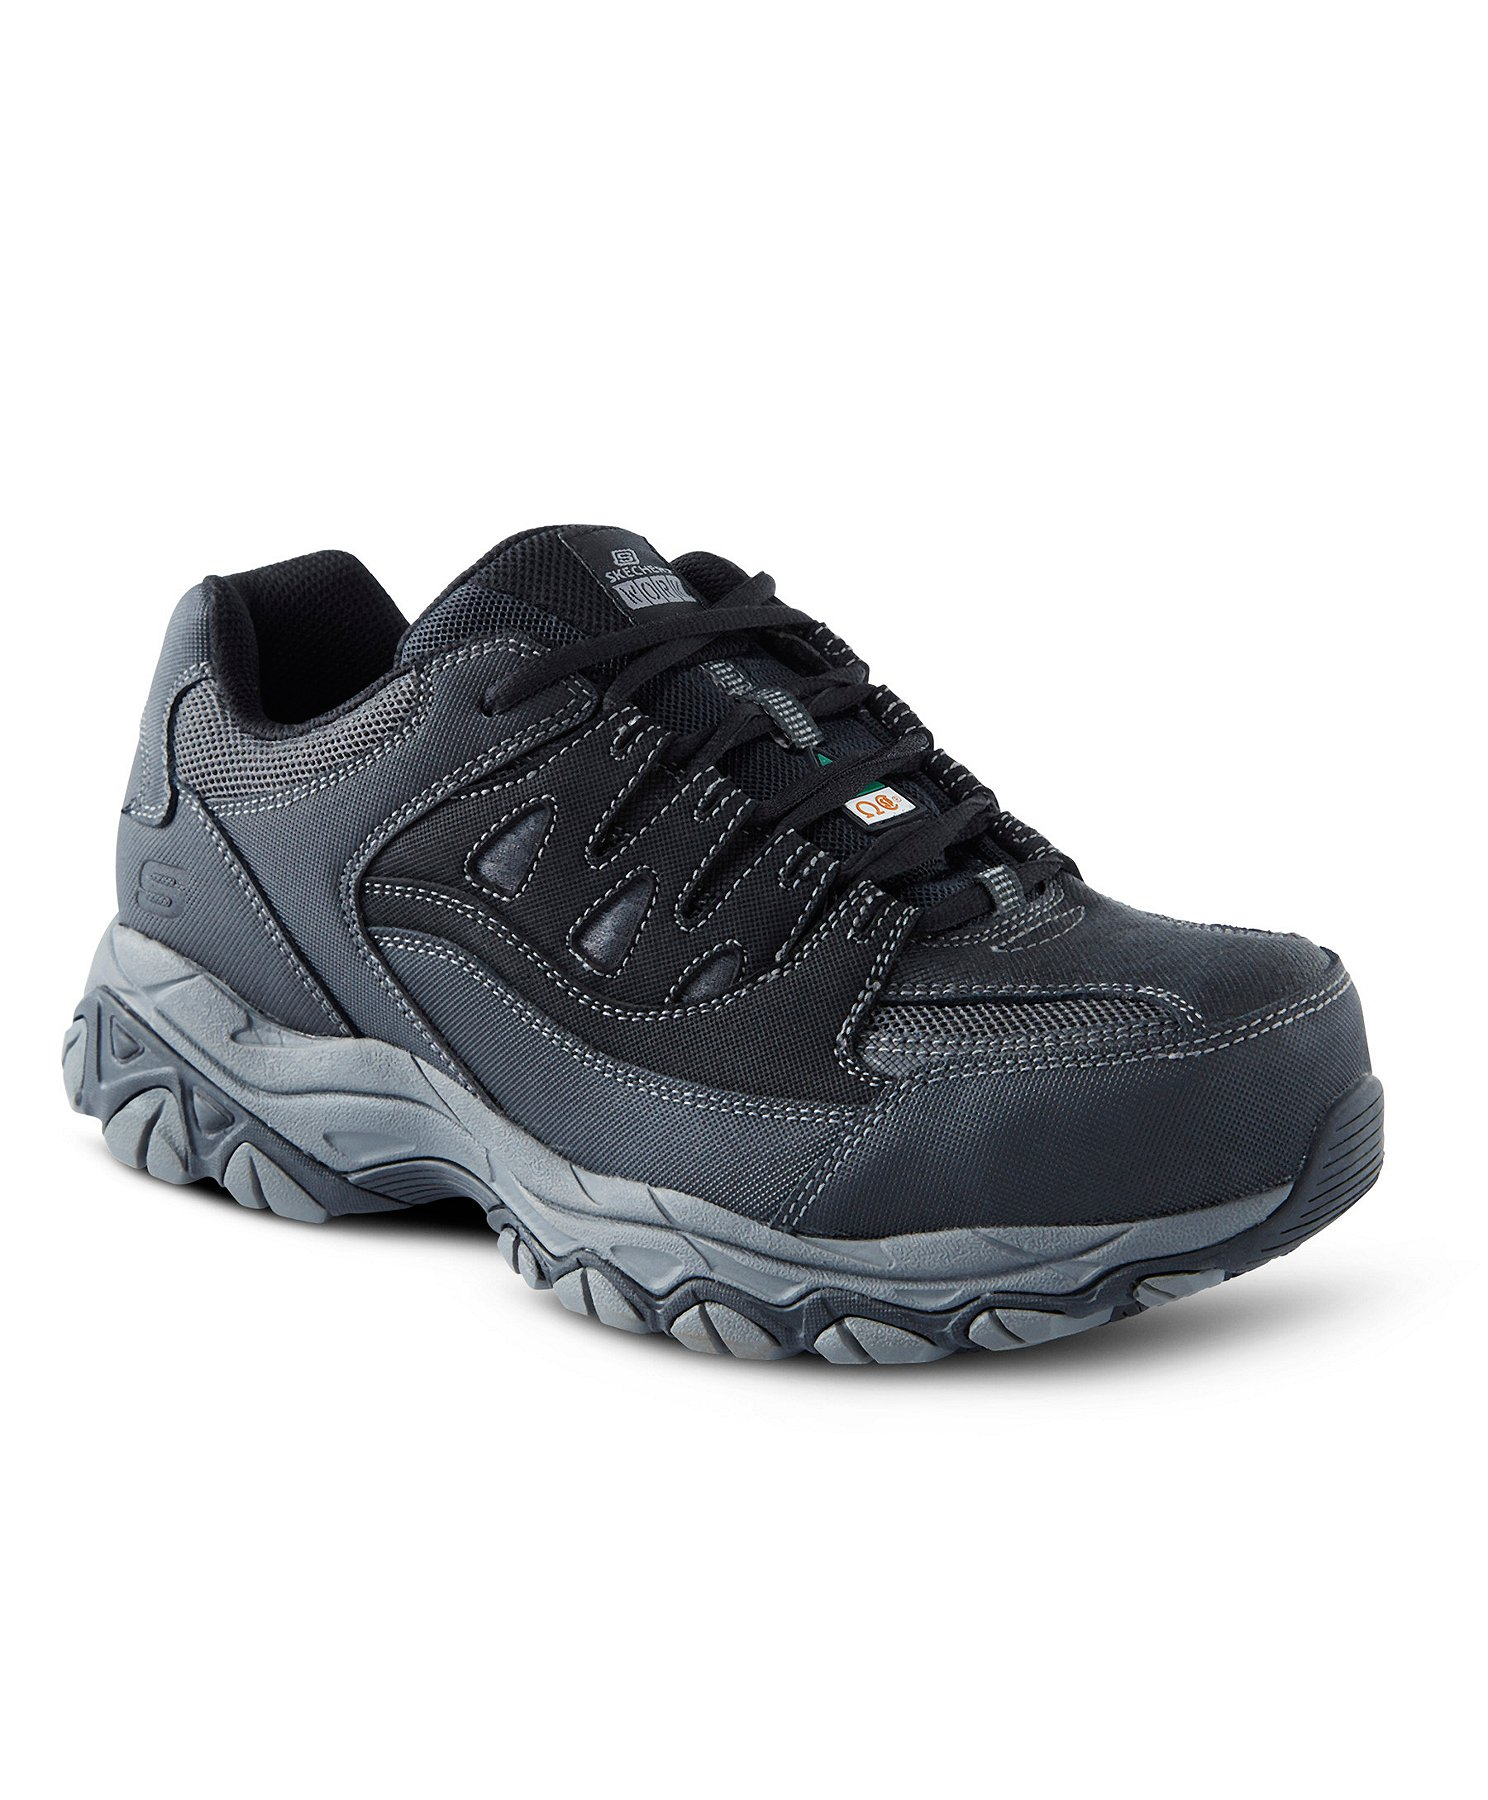 Men's Steel Toe Composite Plate Work Athletic Shoes